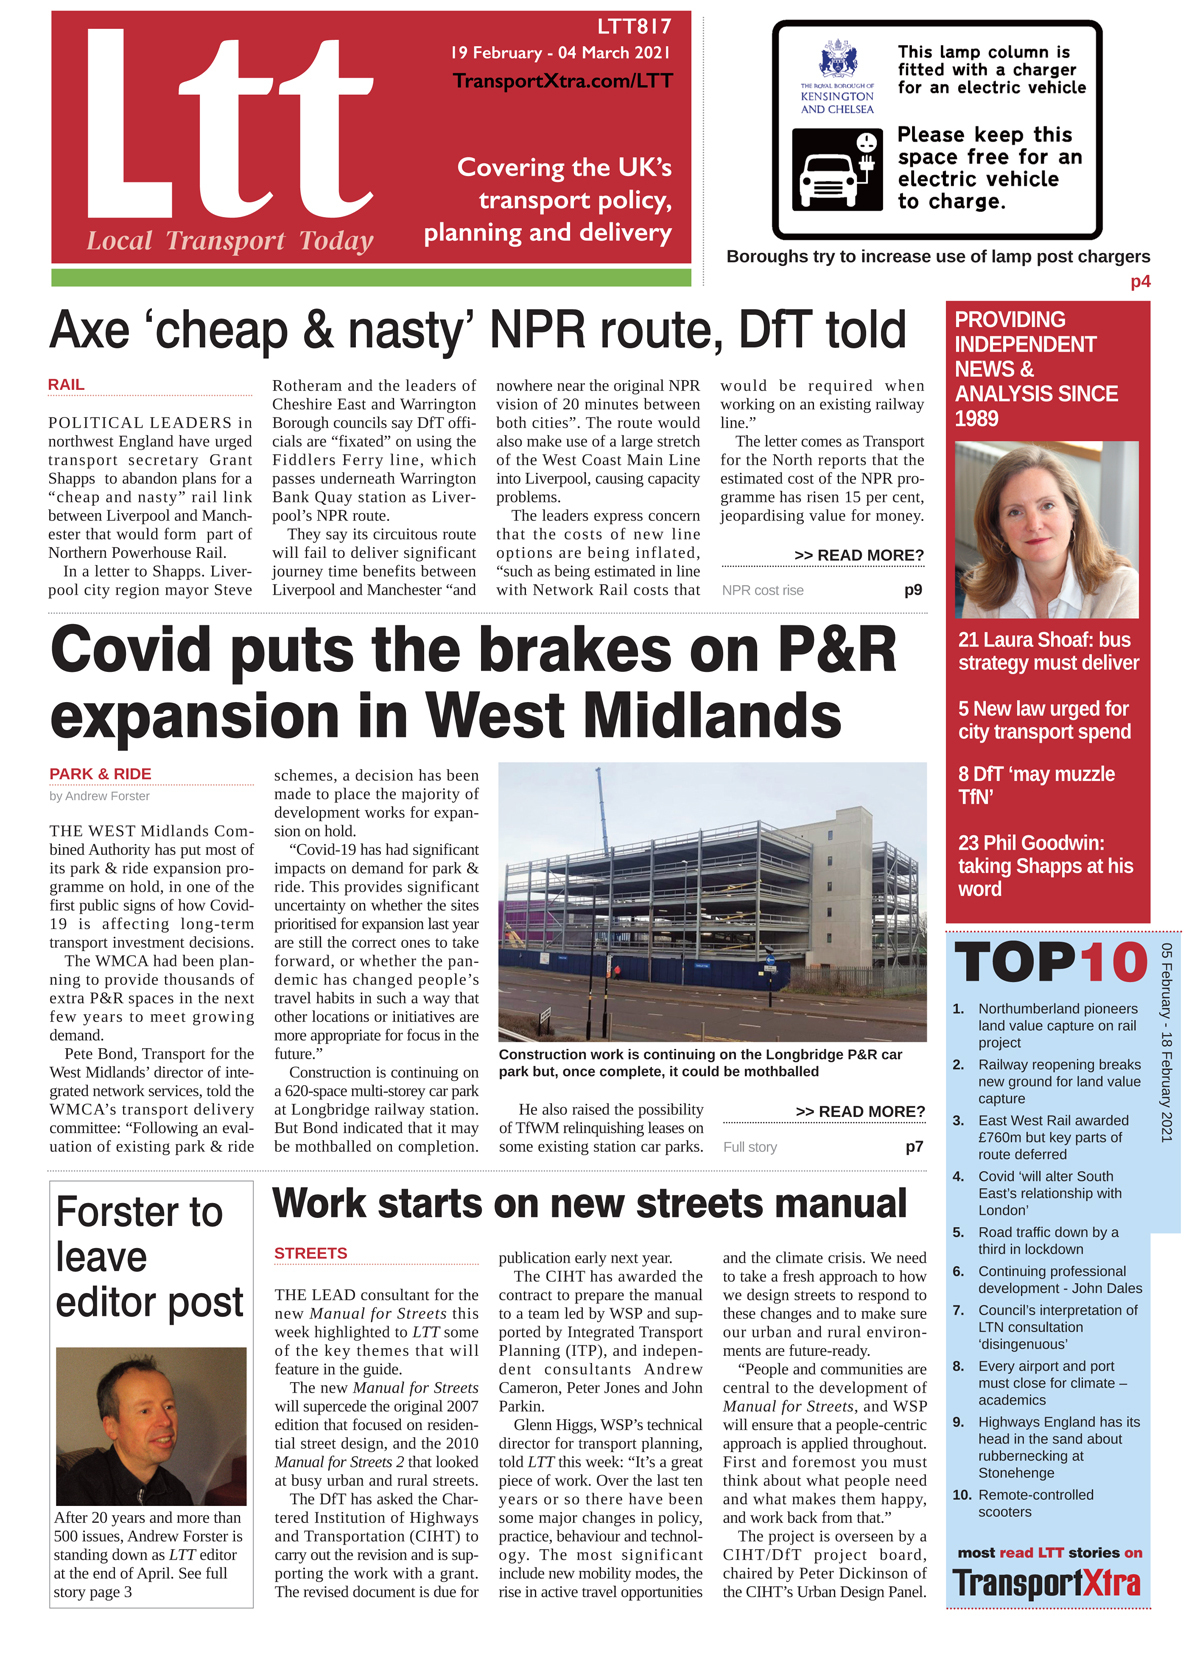 Local Transport Today Issue 817